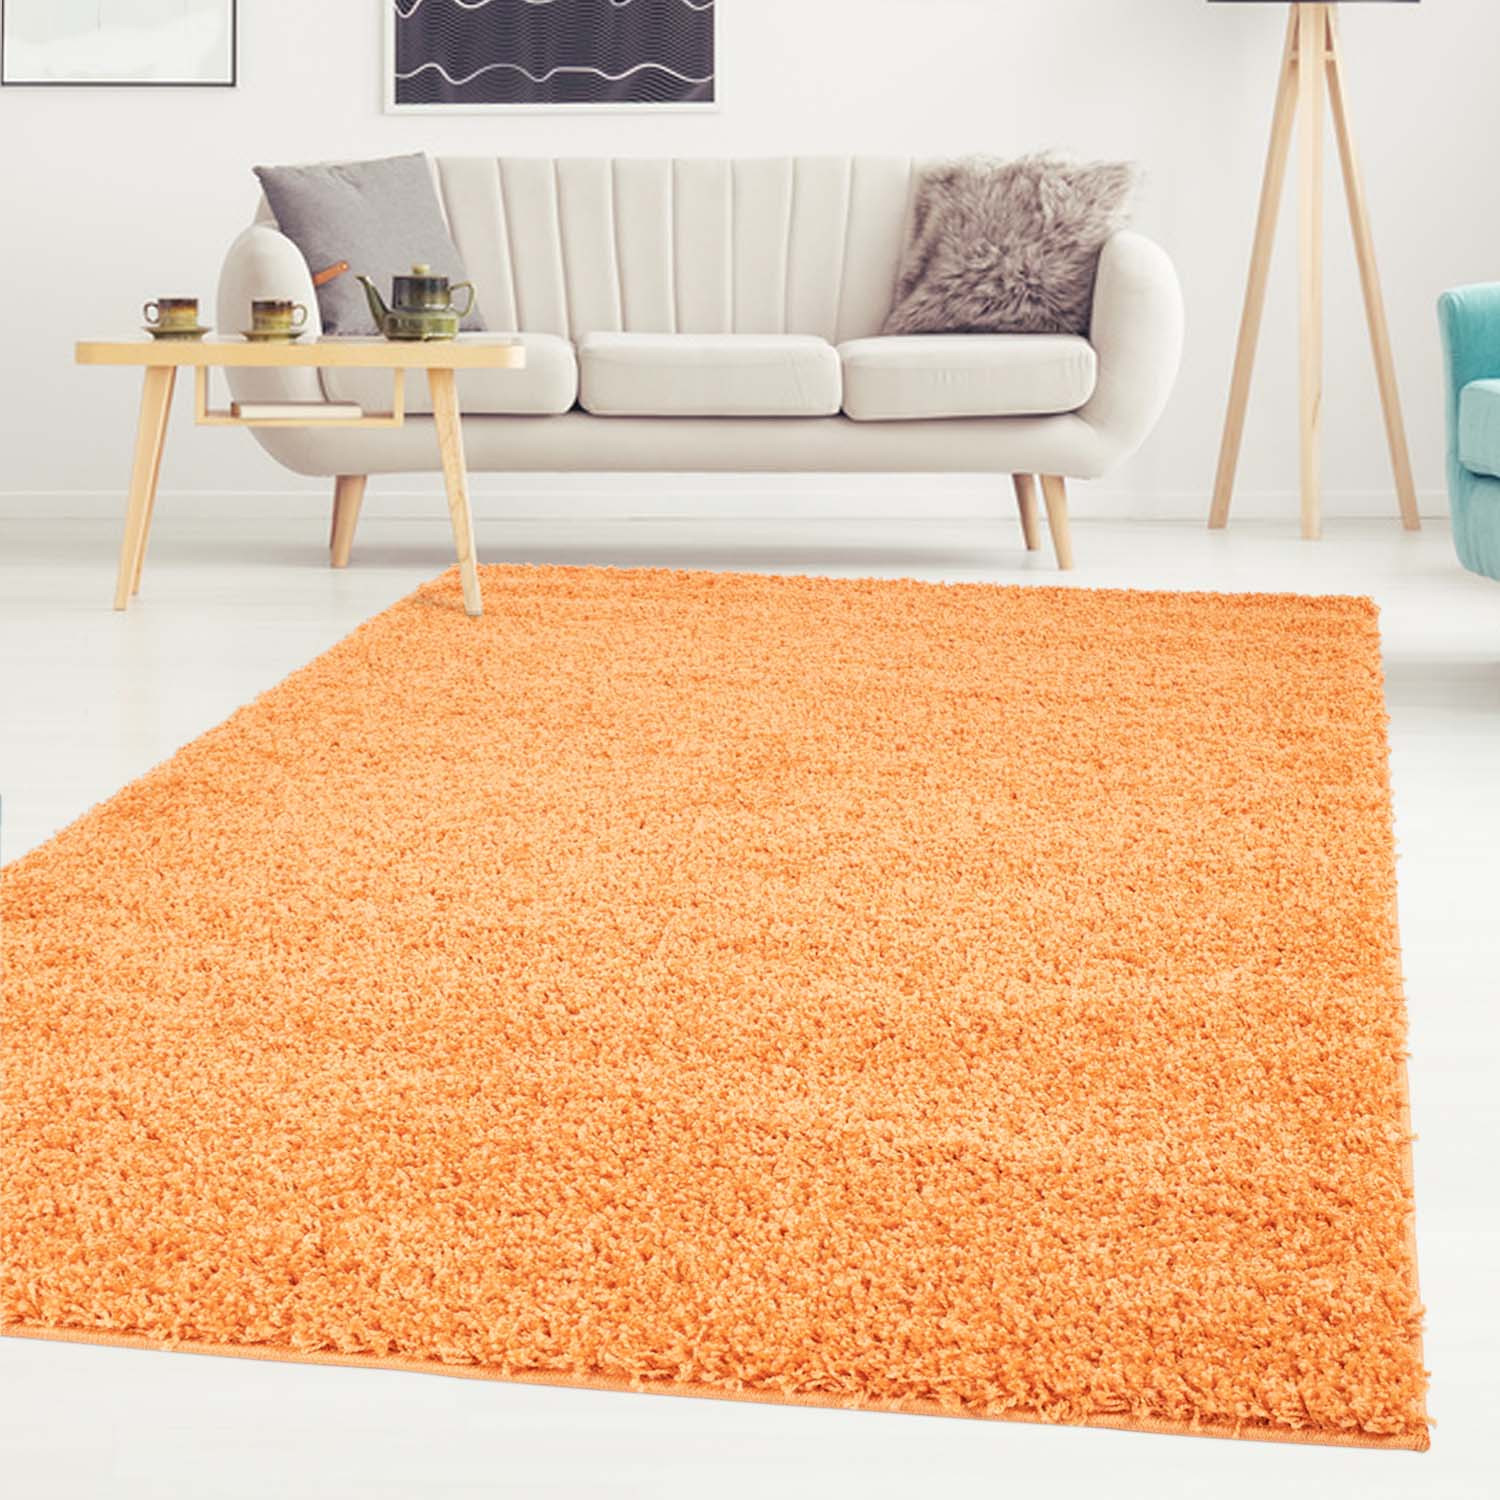 Tapis Shaggy Orange Tapis Shaggy Trim Orange